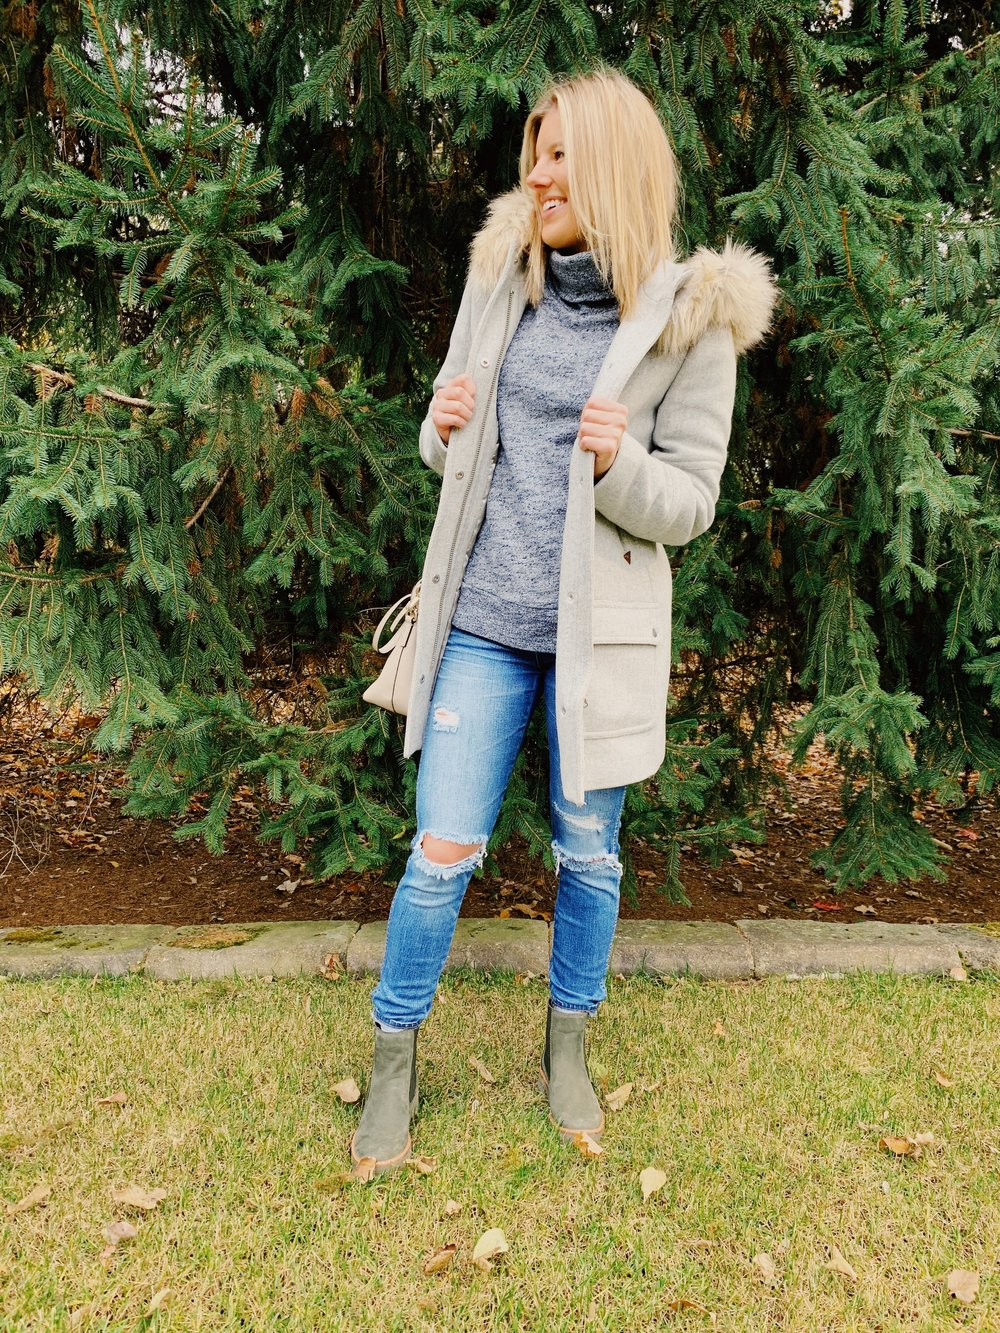 OUTFIT DETAILS:  COAT:  JCREW , SIMILAR STYLE SWEATSHIRT:  H&M , Jeans: Madewell, Boots:  Timerland , Purse: Kate Spade